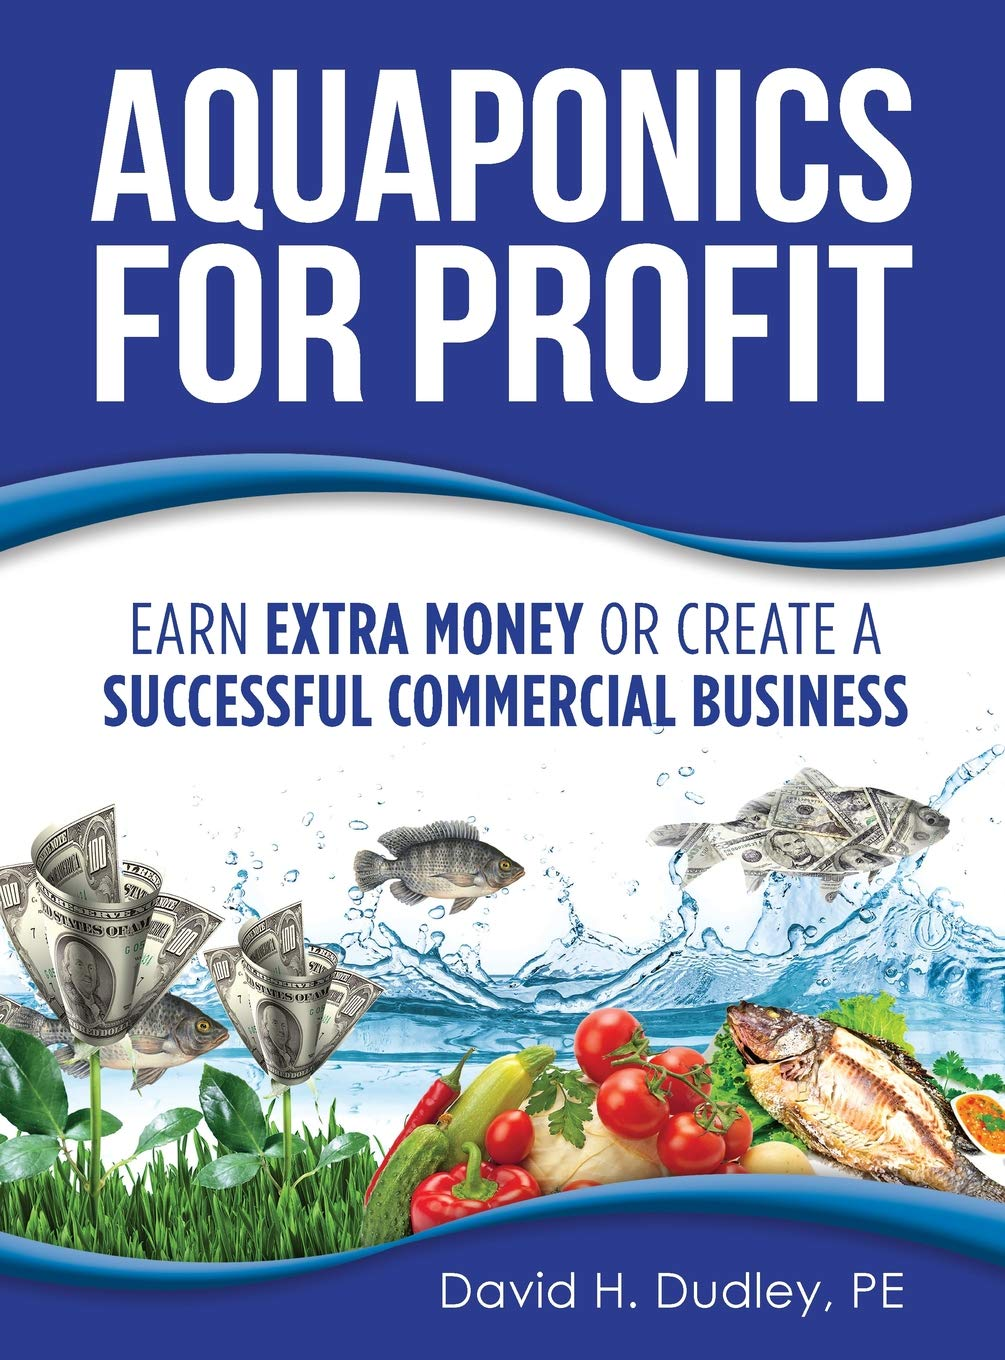 Buy Aquaponics for Profit: Earn Extra Money or Create a